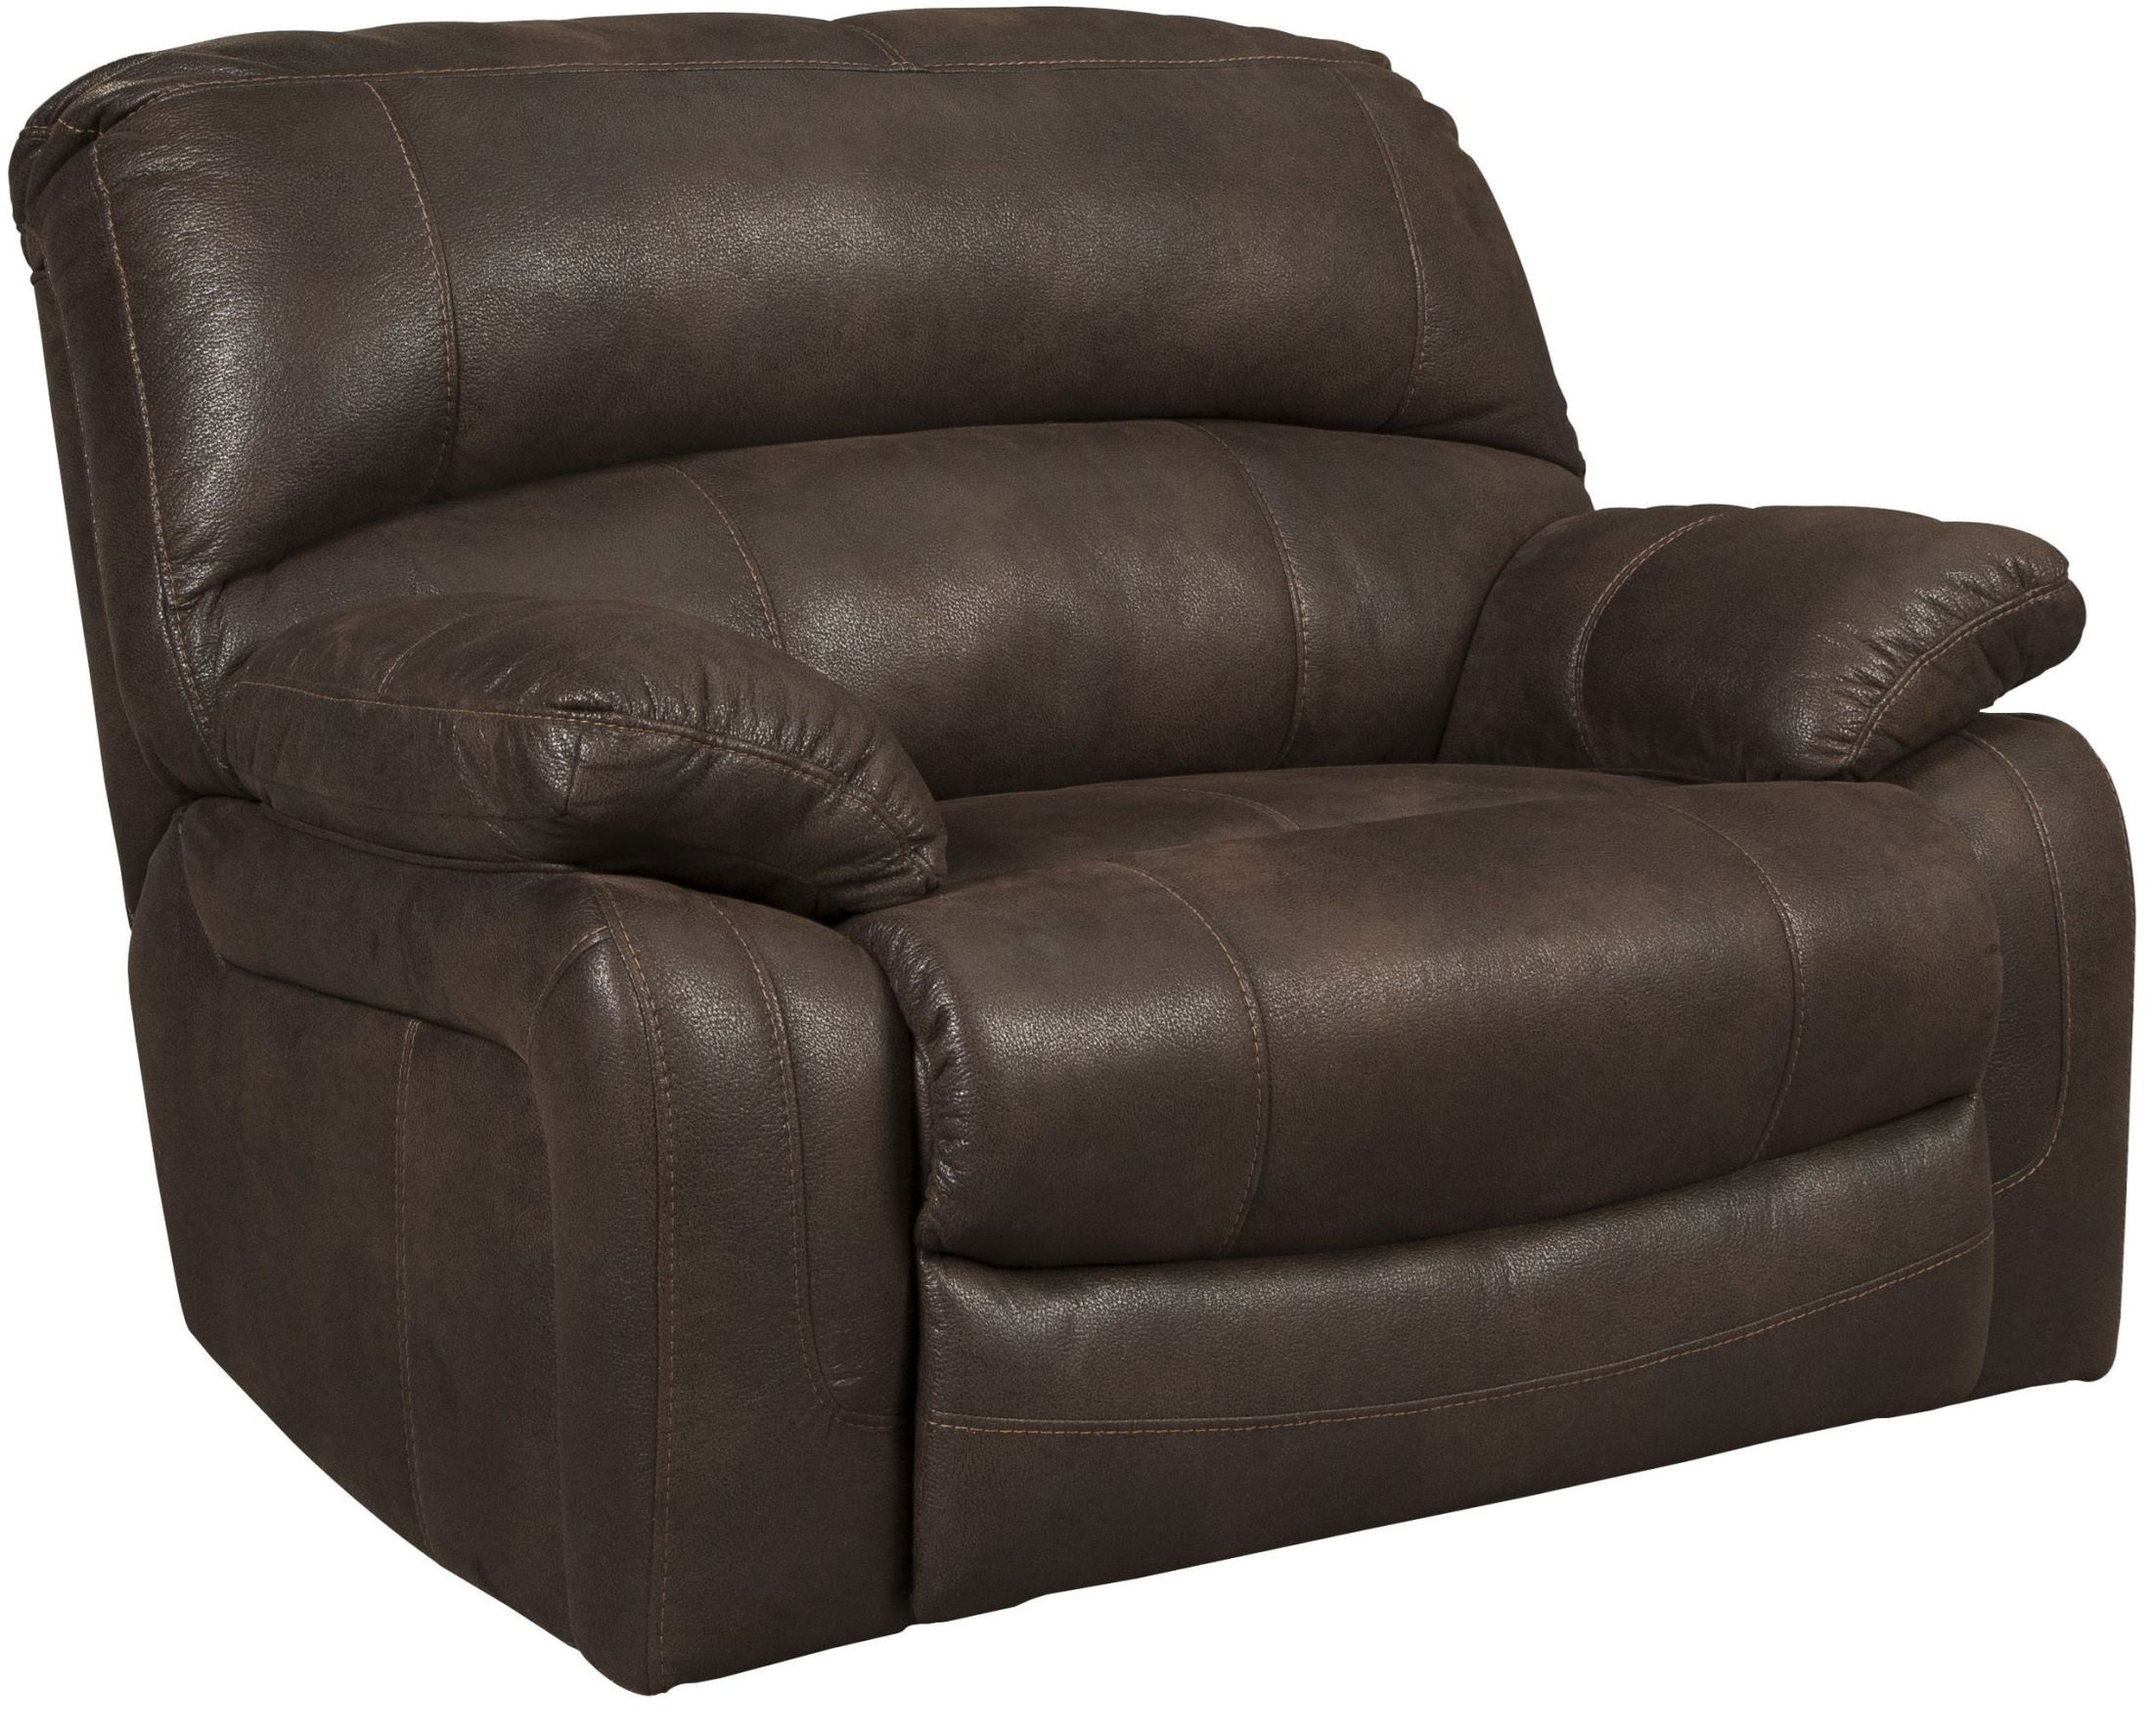 zavier truffle wide seat power recliner from ashley. Black Bedroom Furniture Sets. Home Design Ideas